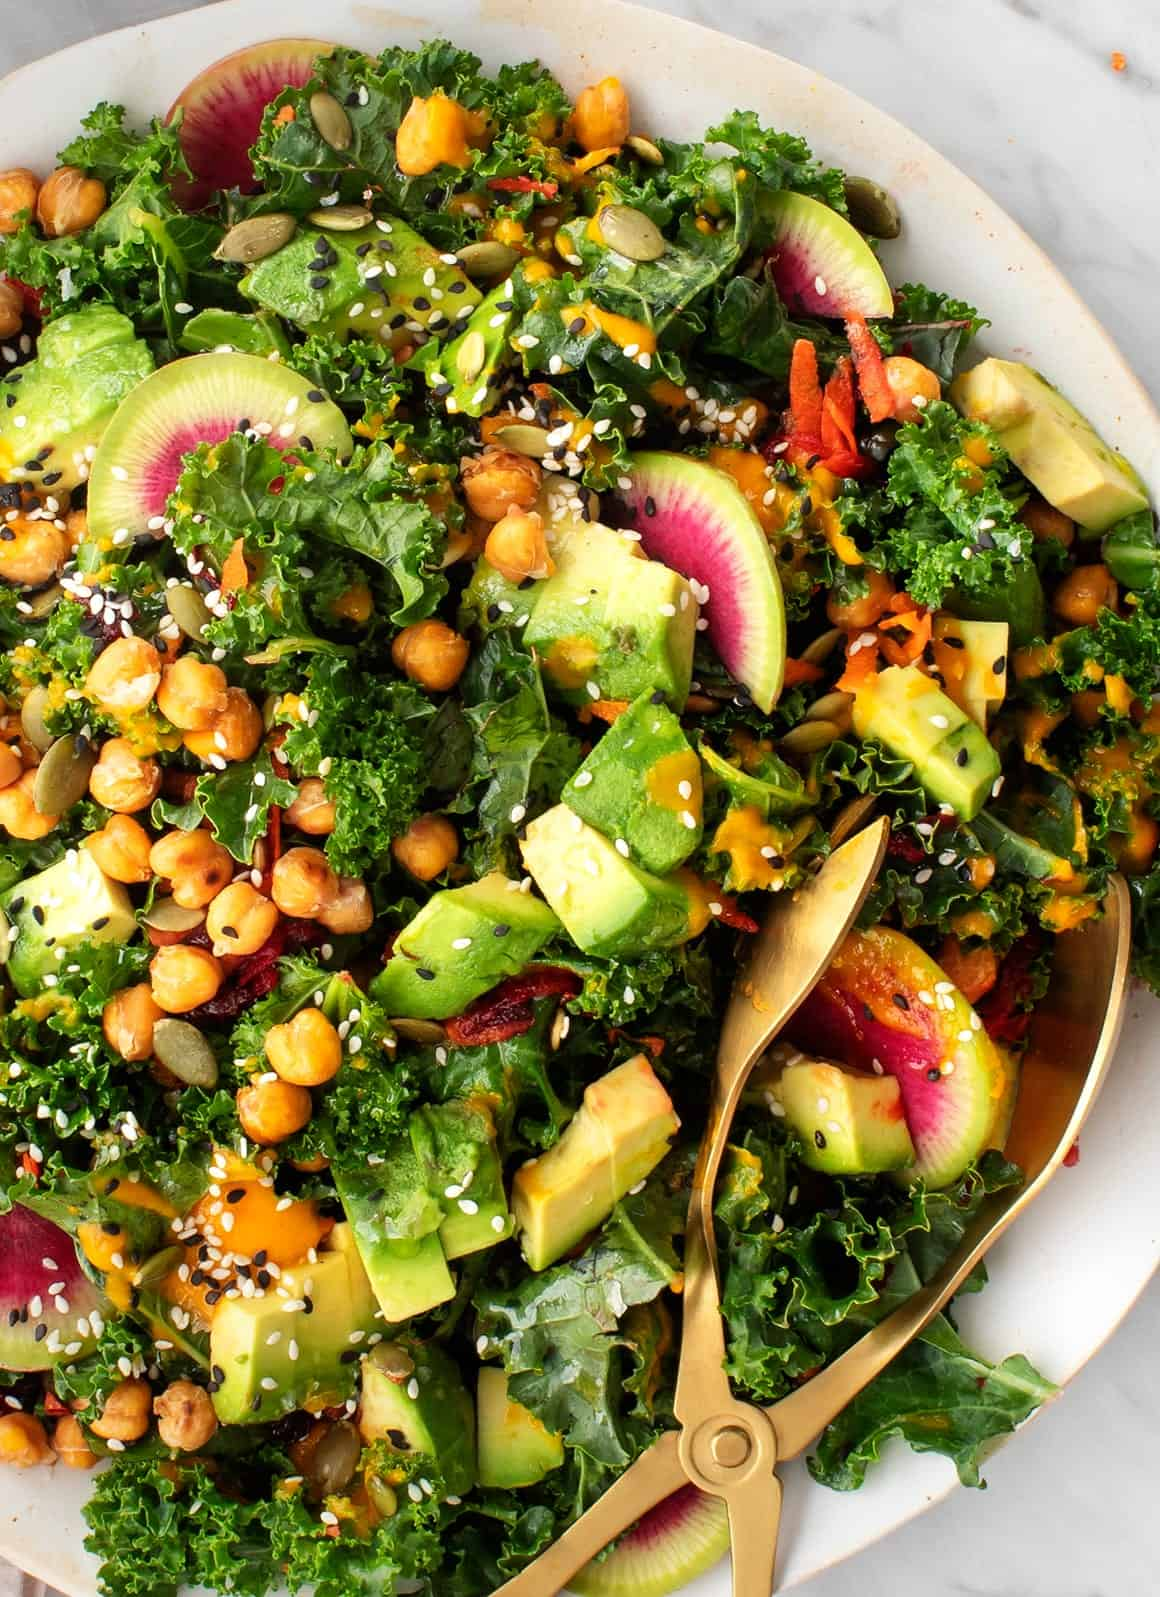 Rainbow Kale Salad with Carrot Ginger Dressing